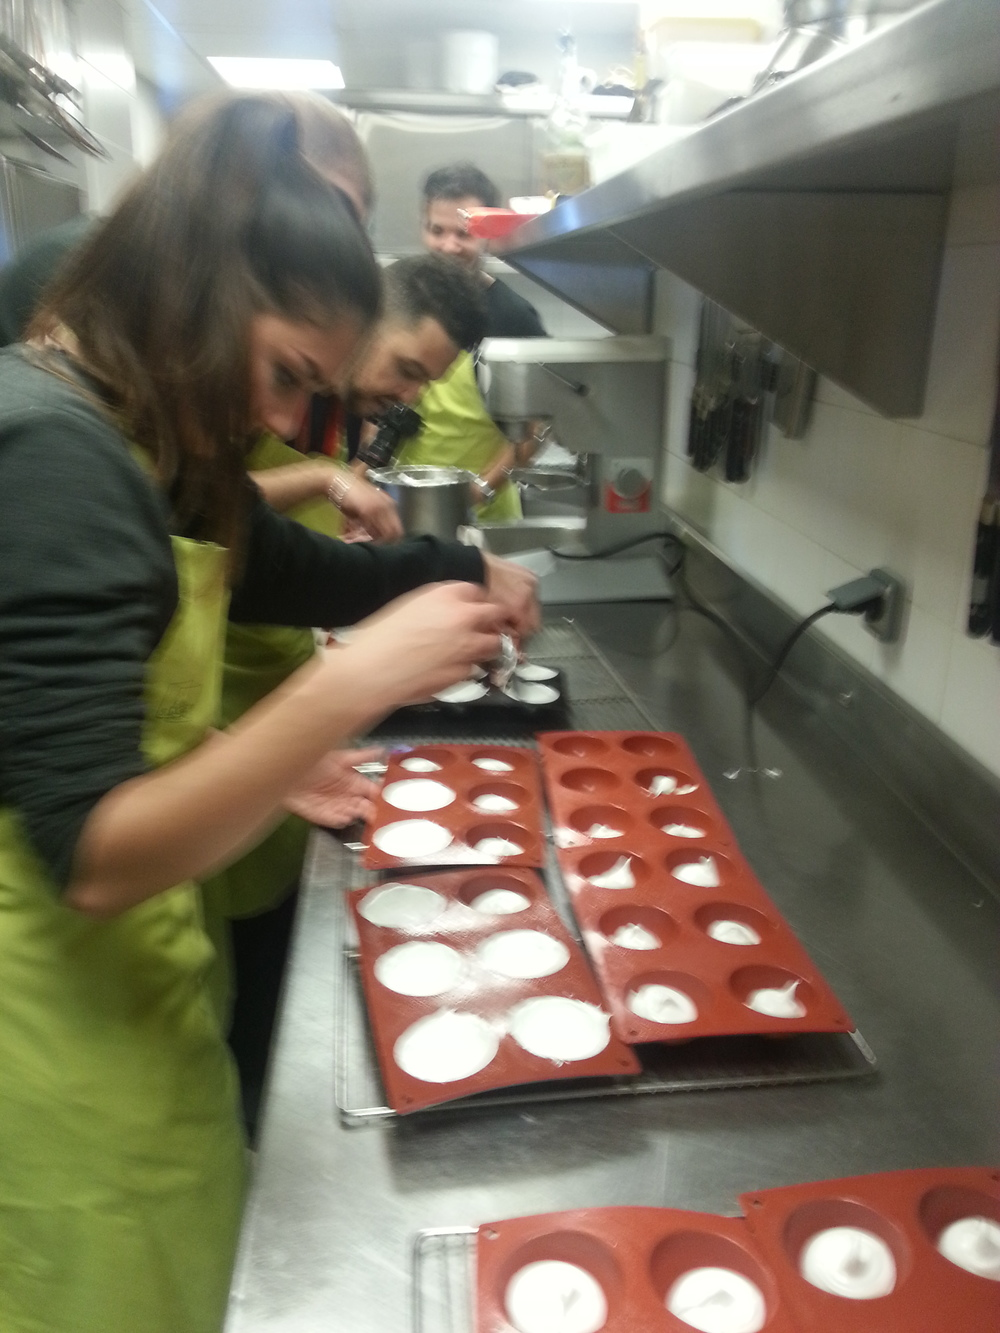 loading the meringue into moulds